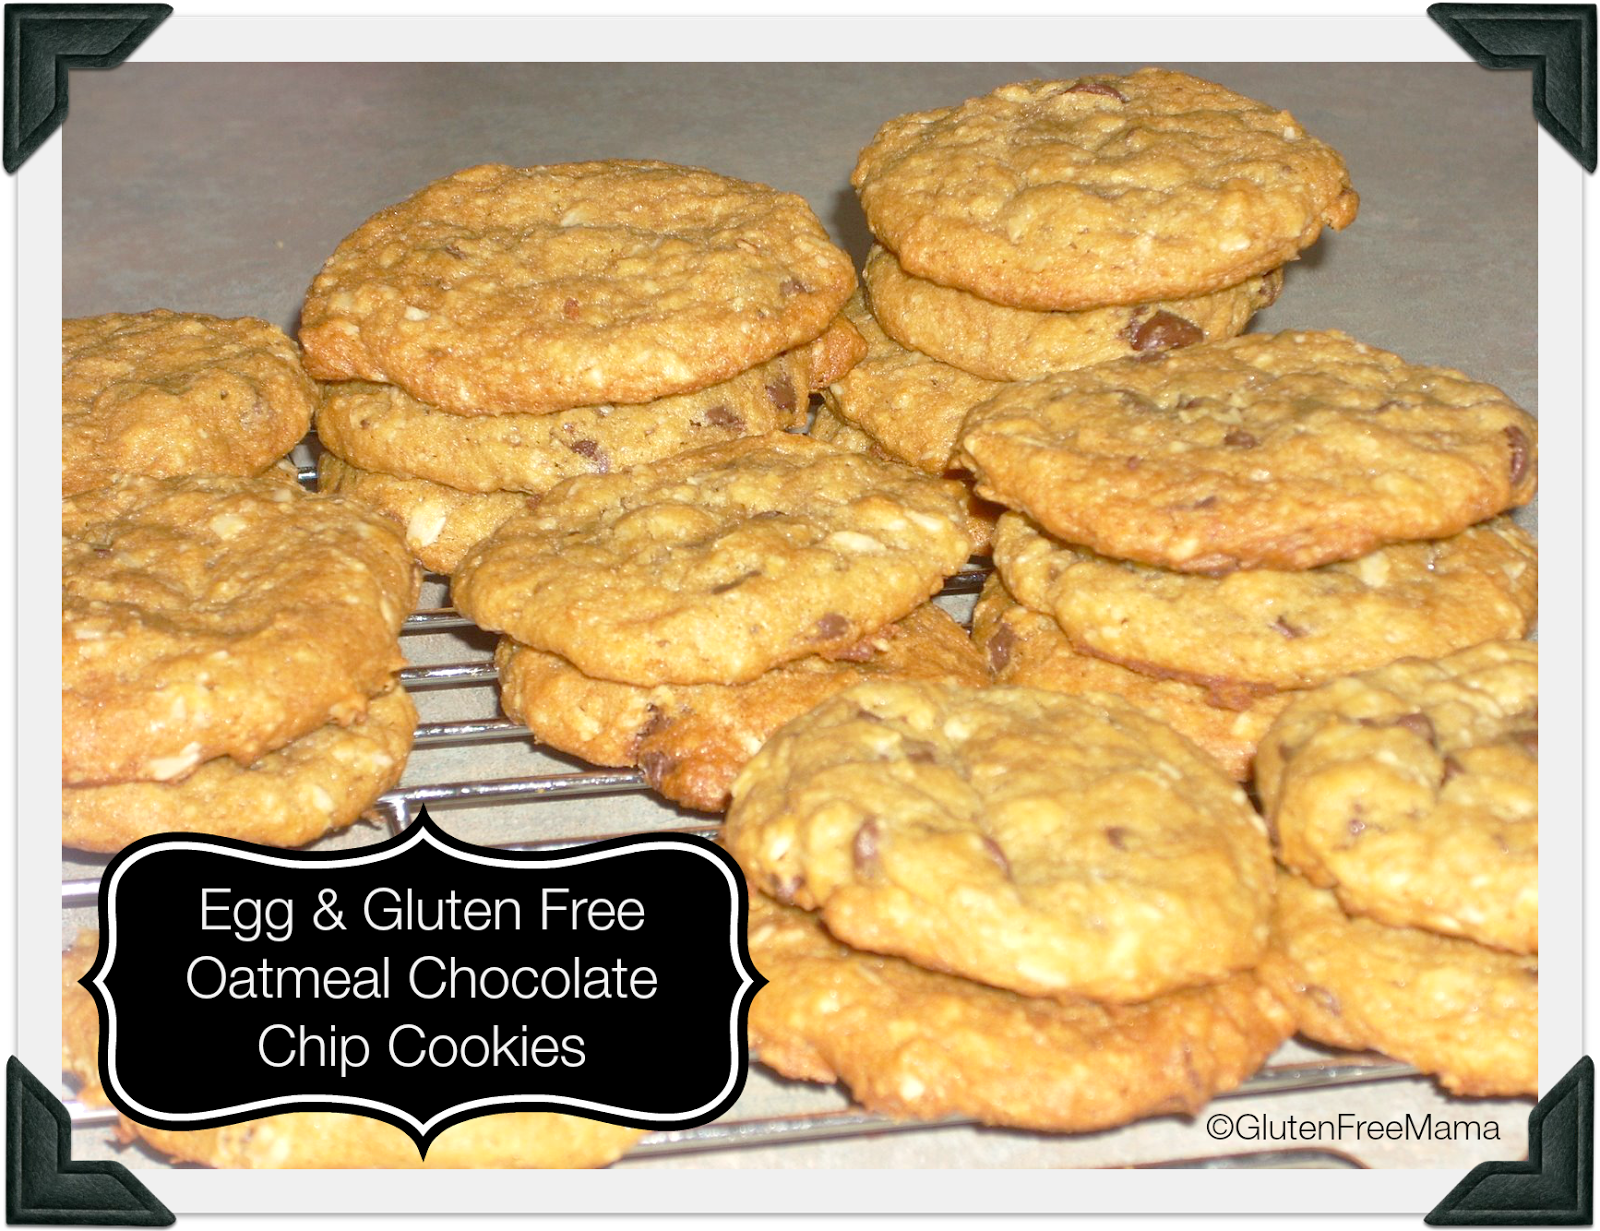 Gluten and Egg Free Oatmeal Chocolate Chip Cookies